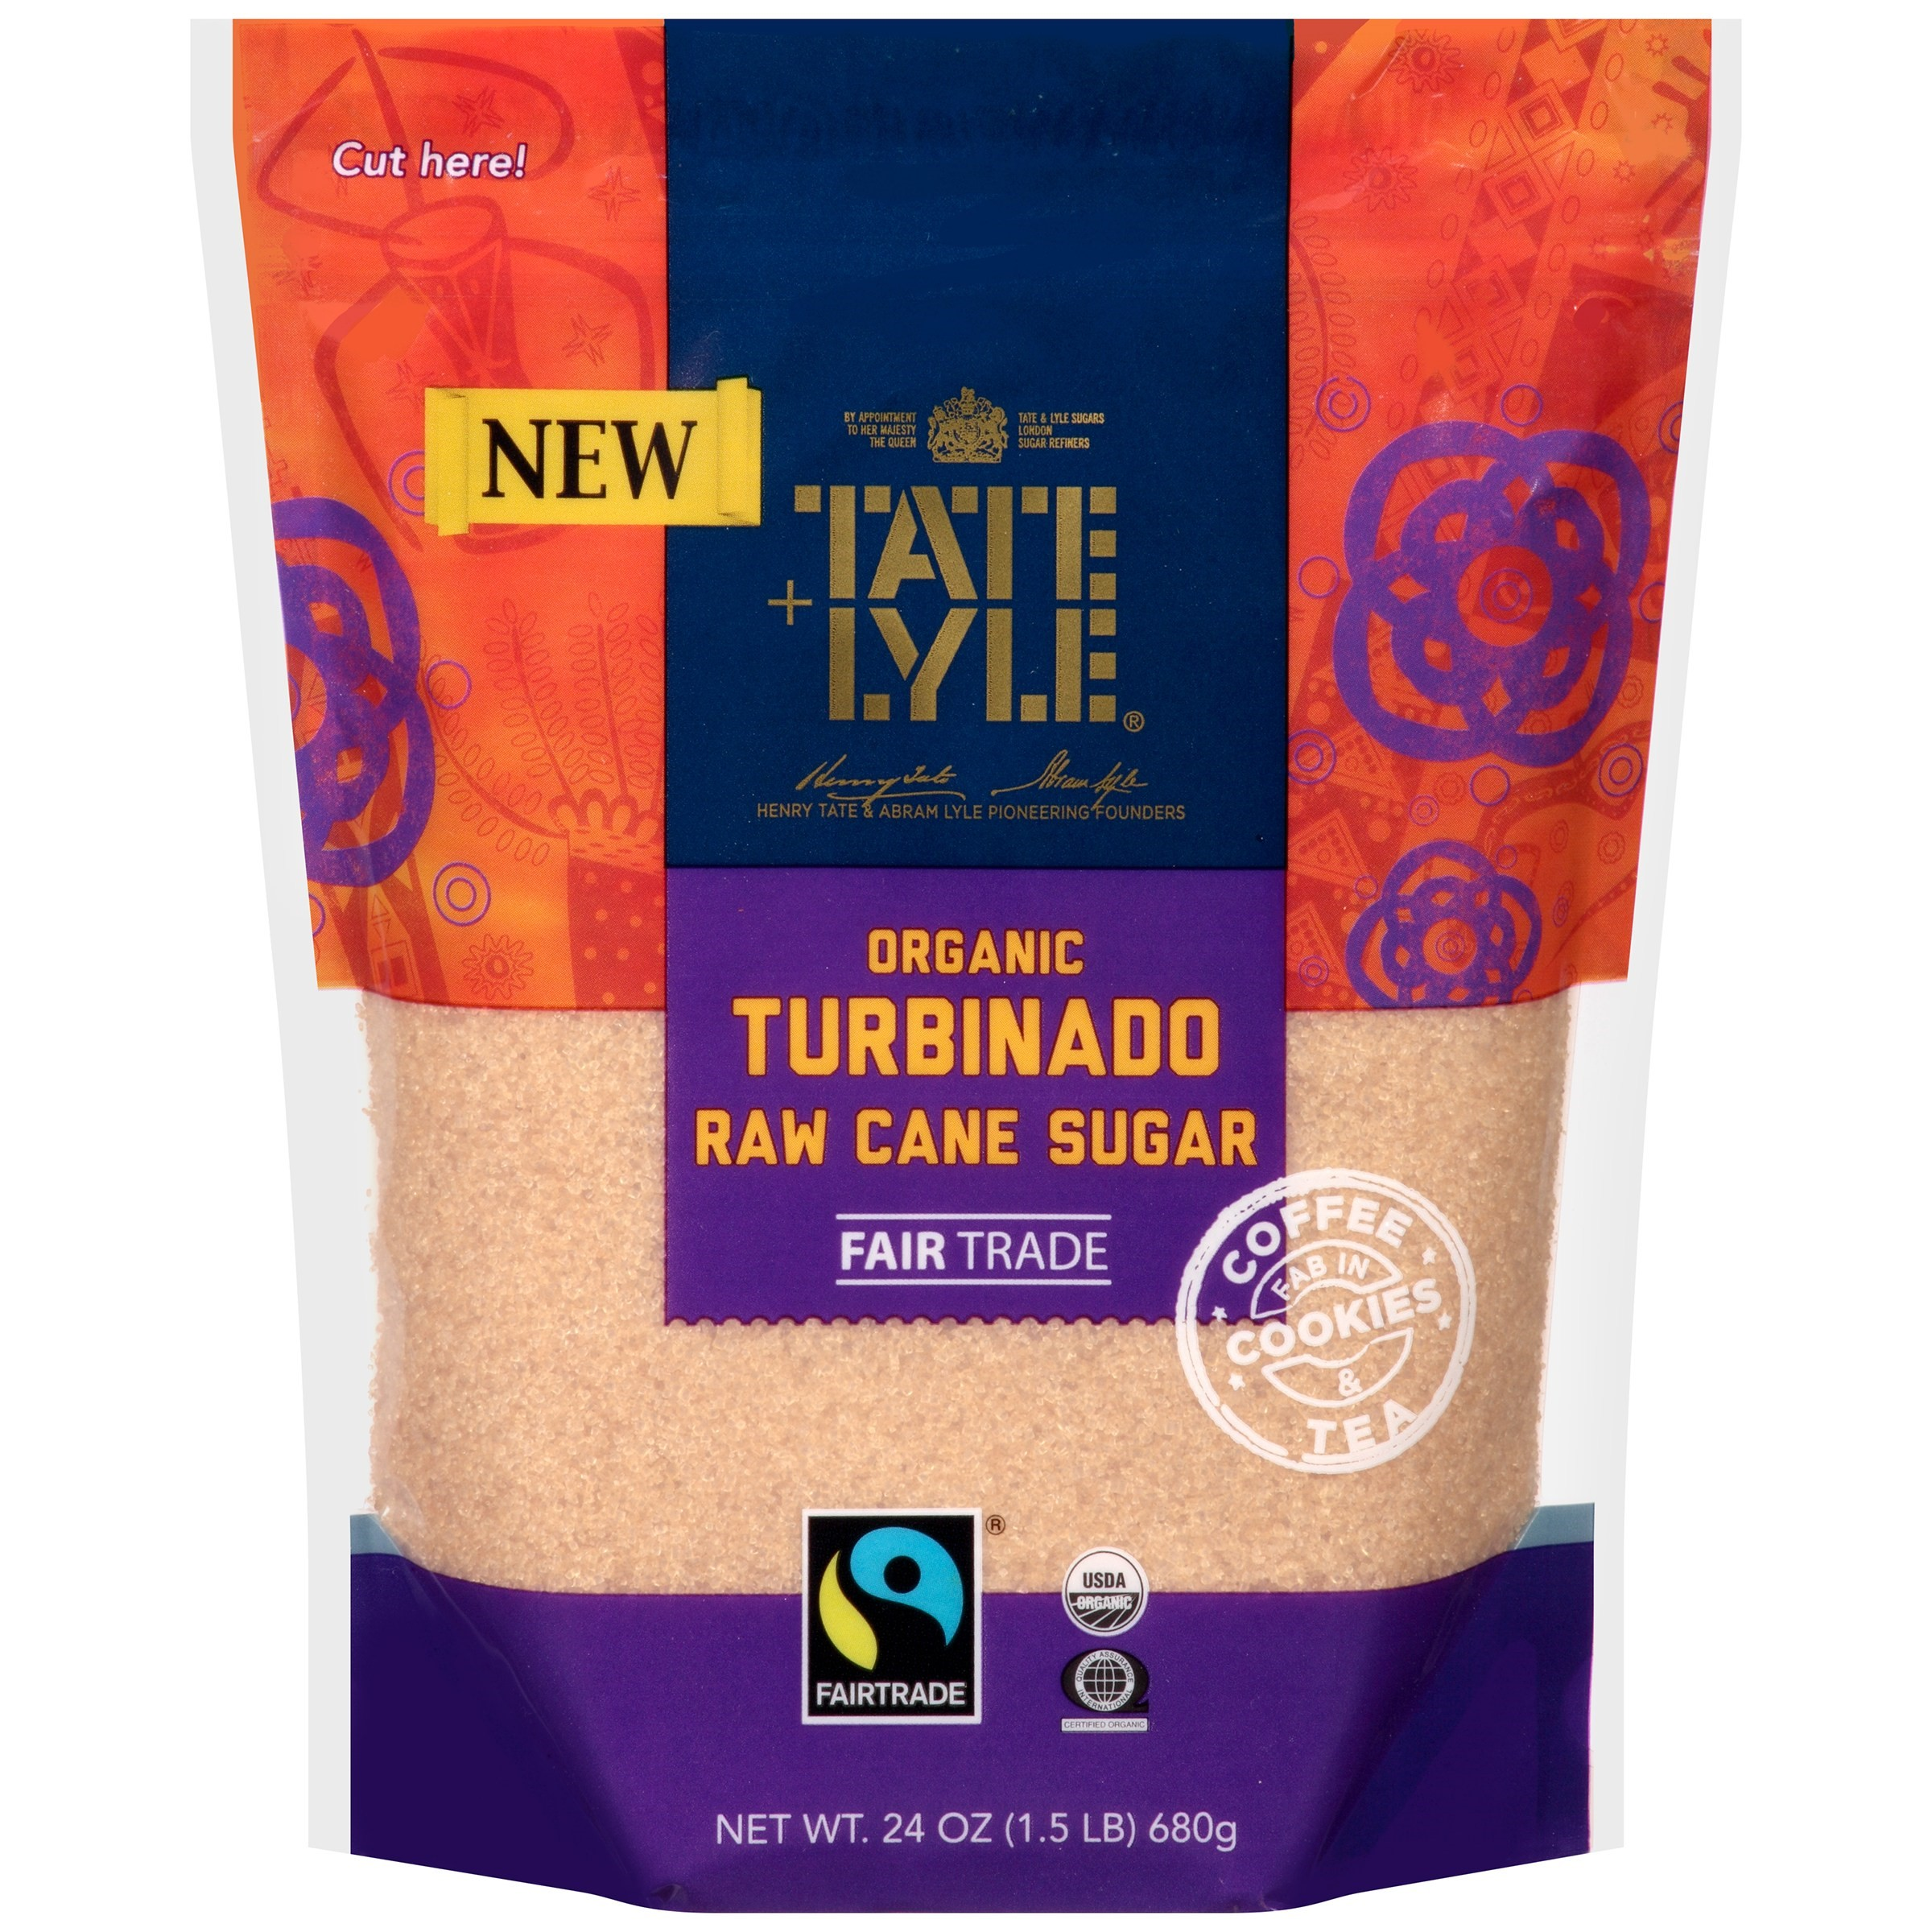 Tate & Lyle Organic Turbinado Raw Cane Sugar, 24 oz